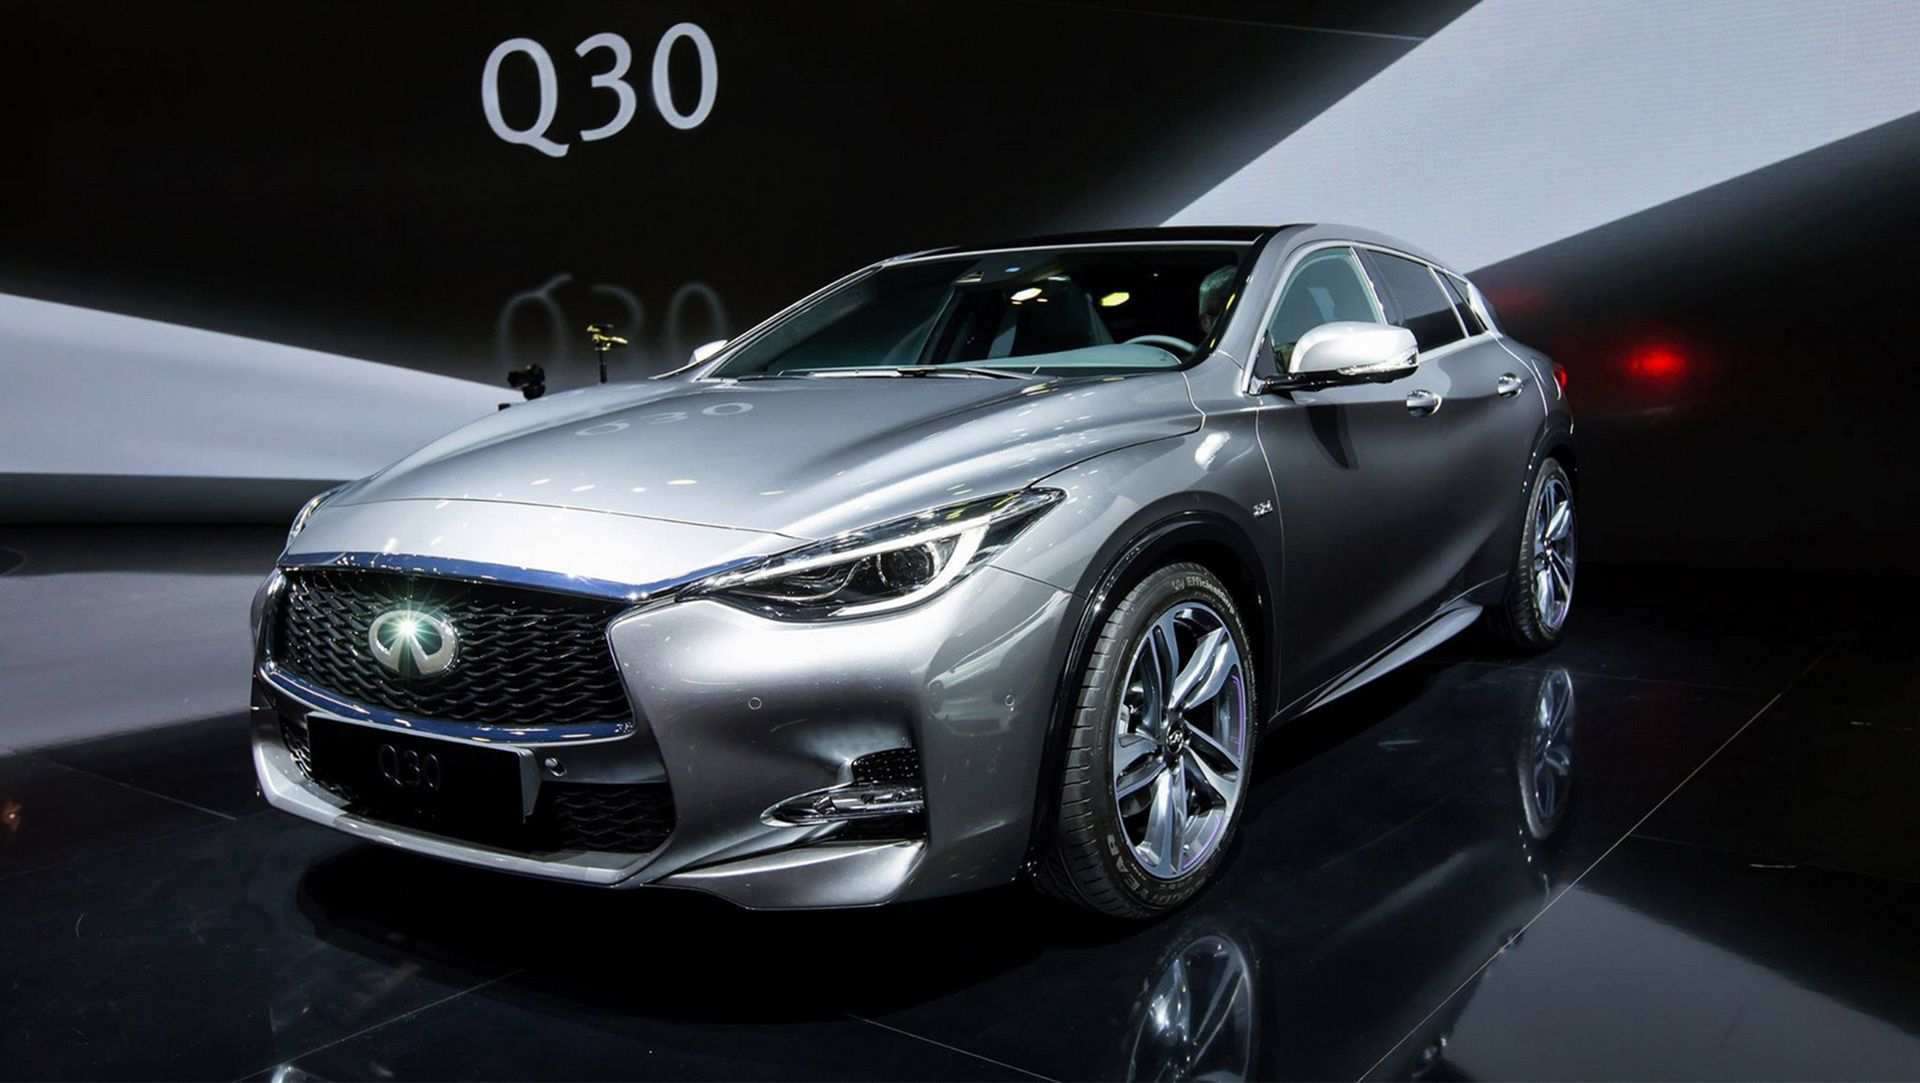 80 The Best 2020 Infiniti Q30 Engine